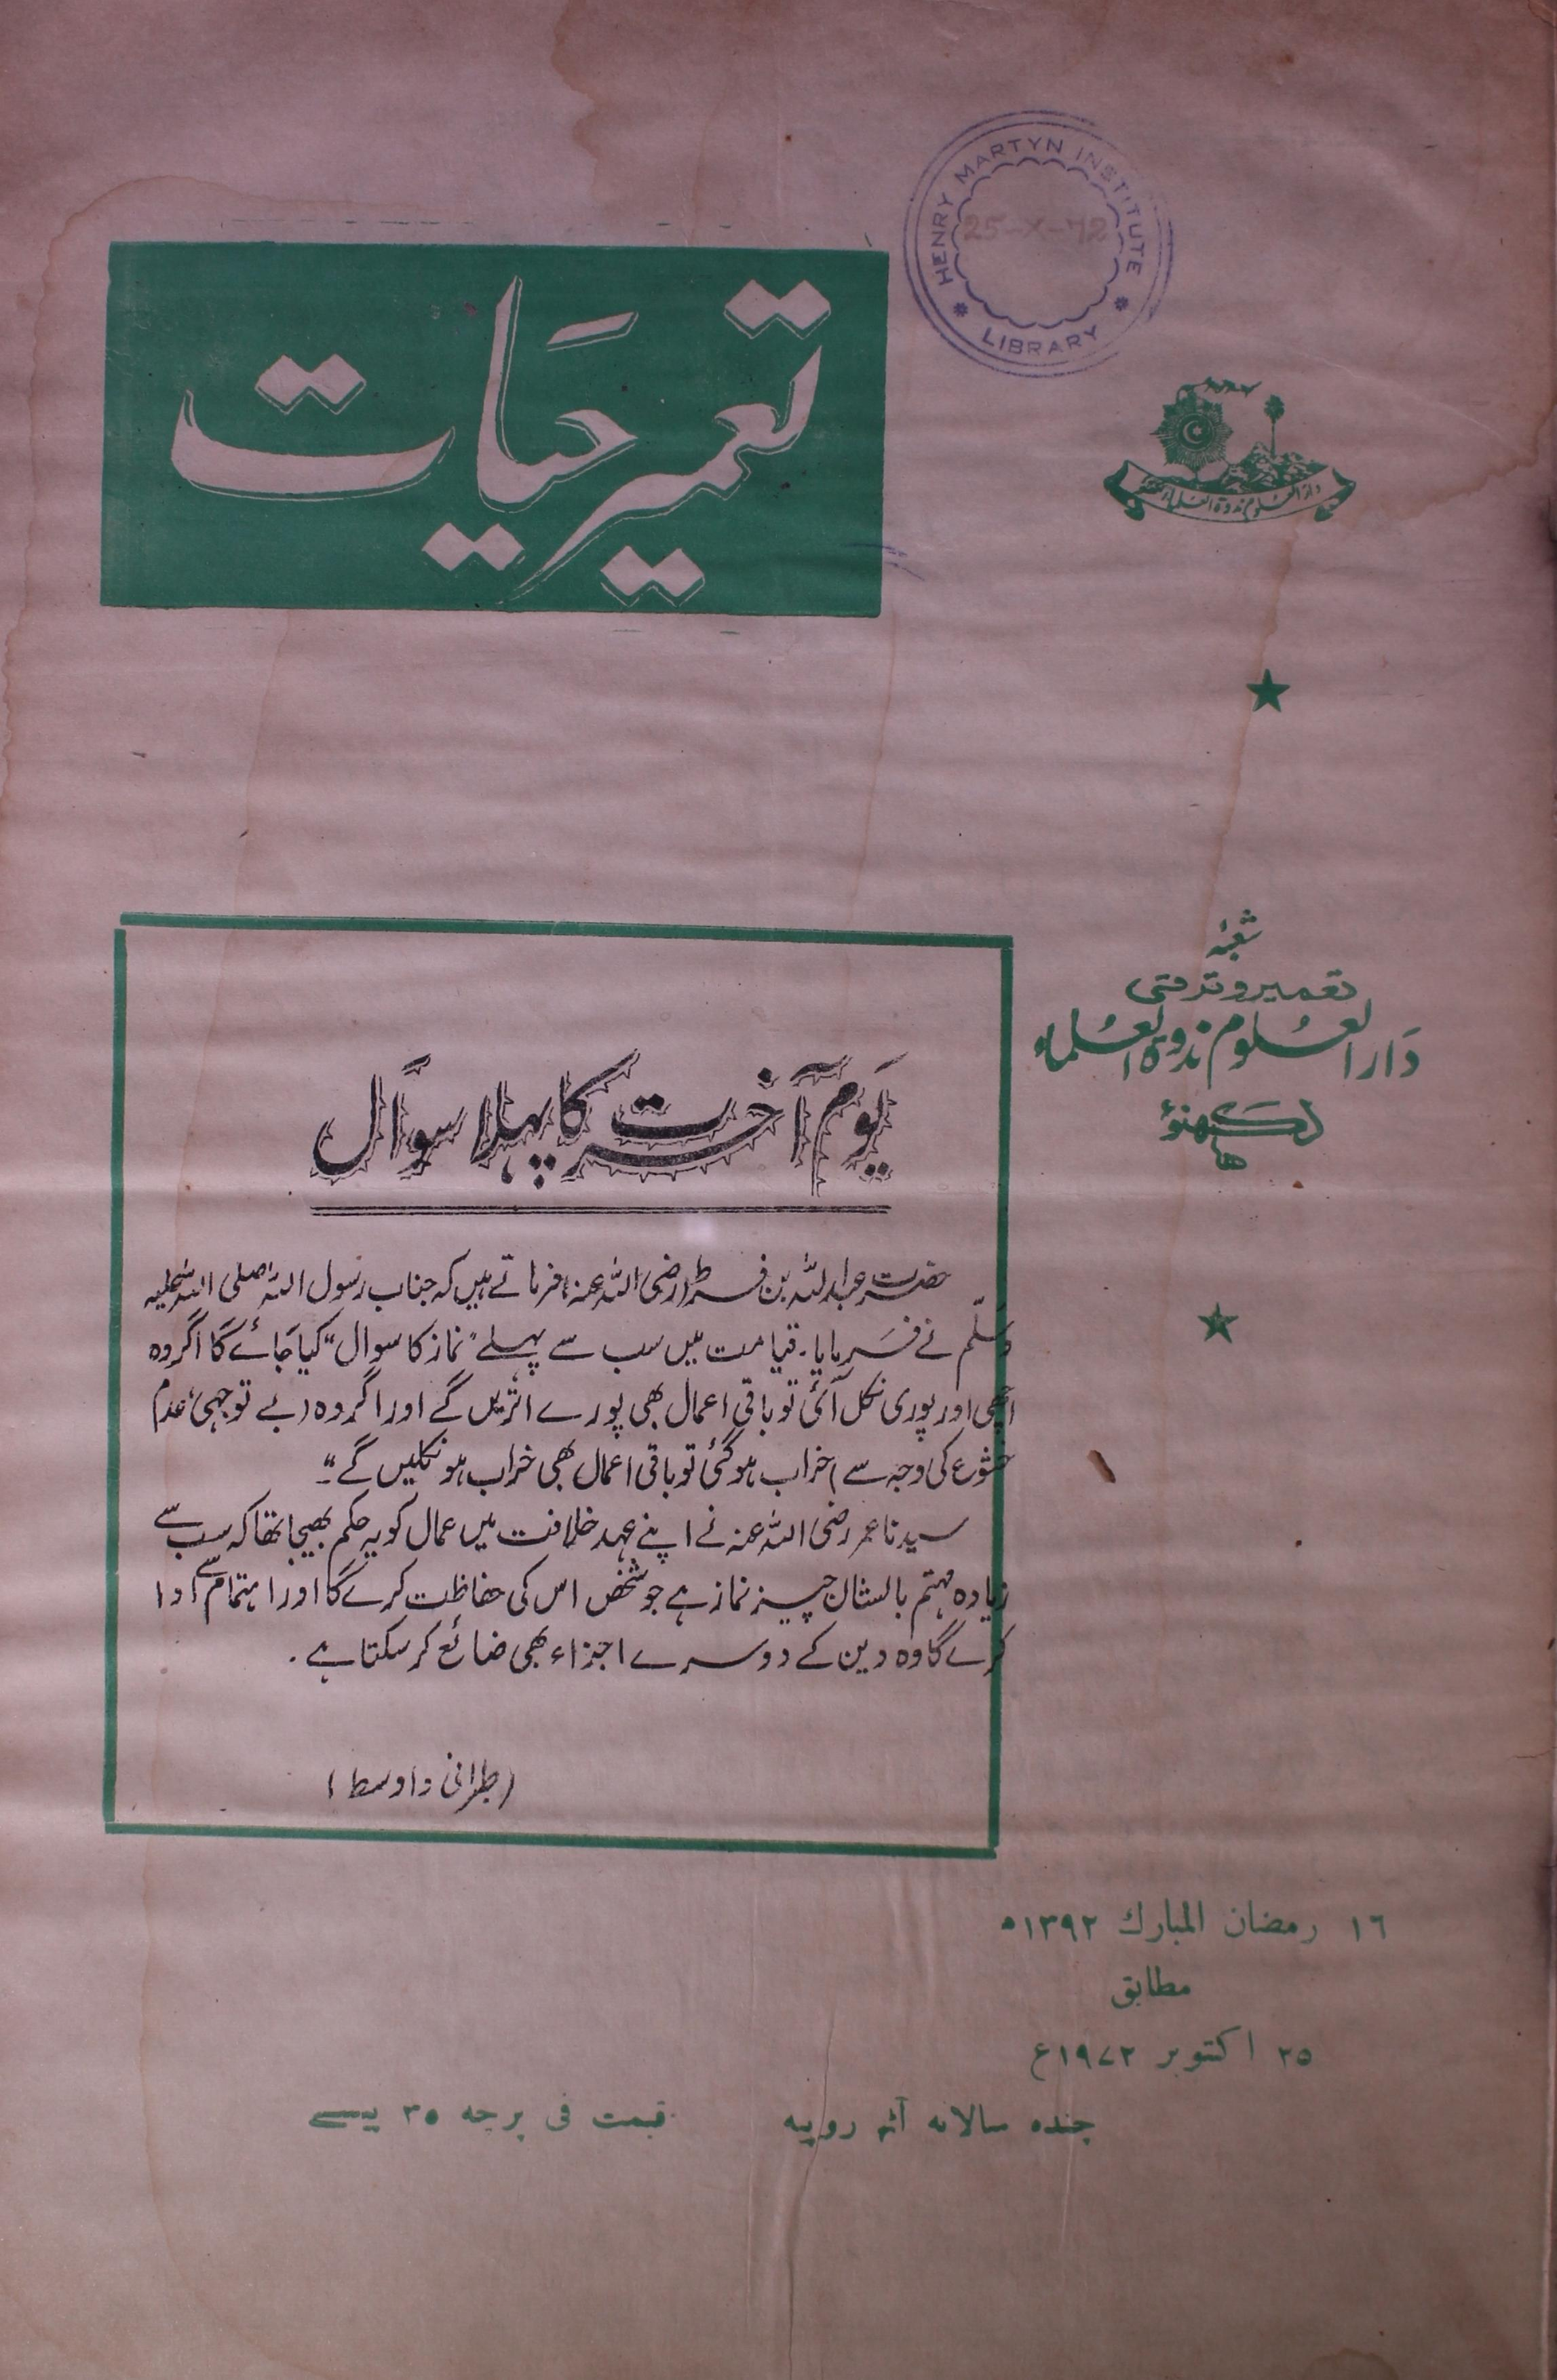 Tameer E Hayat Jild 9 No 24 .25 October 1972